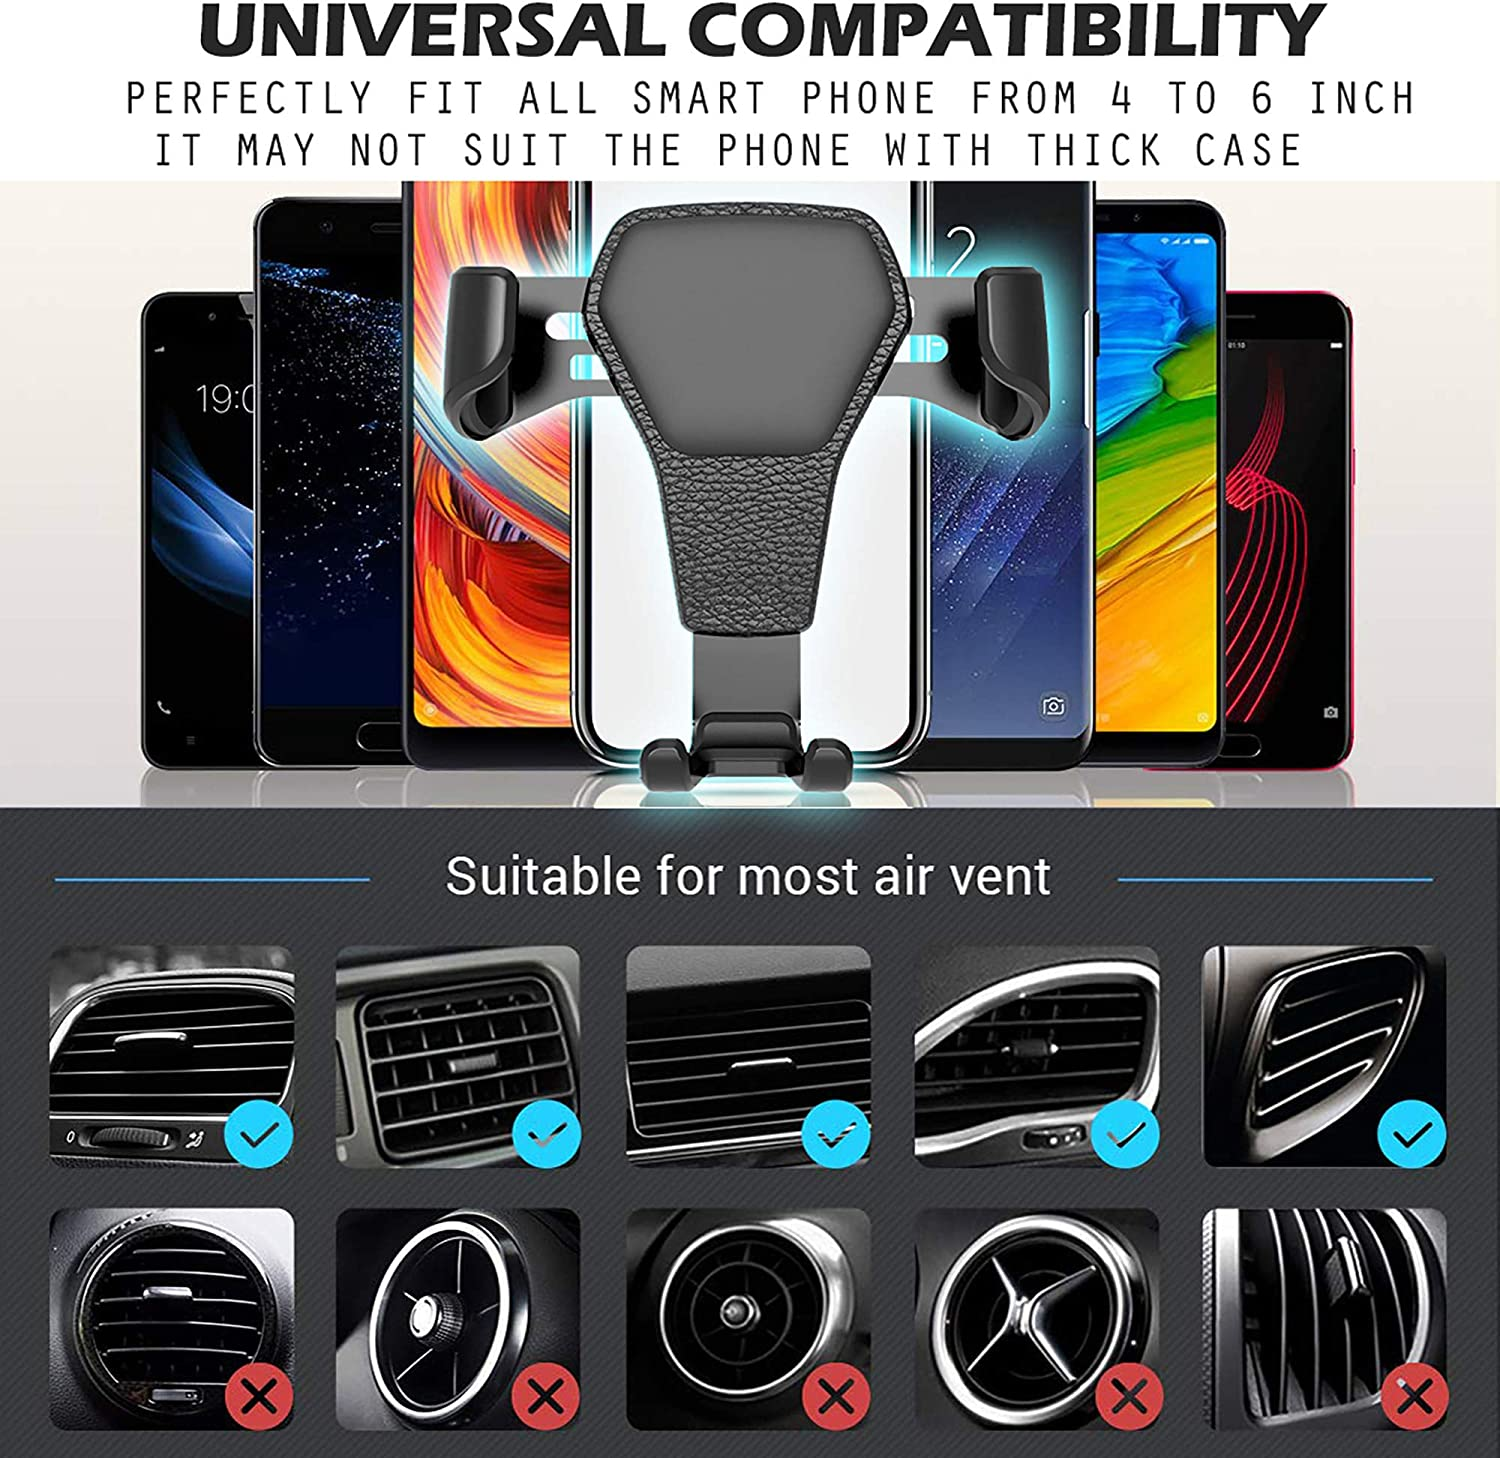 Handyone Universal Car Phone Mount LG Series Other Smartphone Air Vent 360/° Rotation Holder for iPhone X 8 Plus 7plus 6s 6plus SE Samsung Galaxy S9puls S8 S7 Edge S6 Note 8 A9